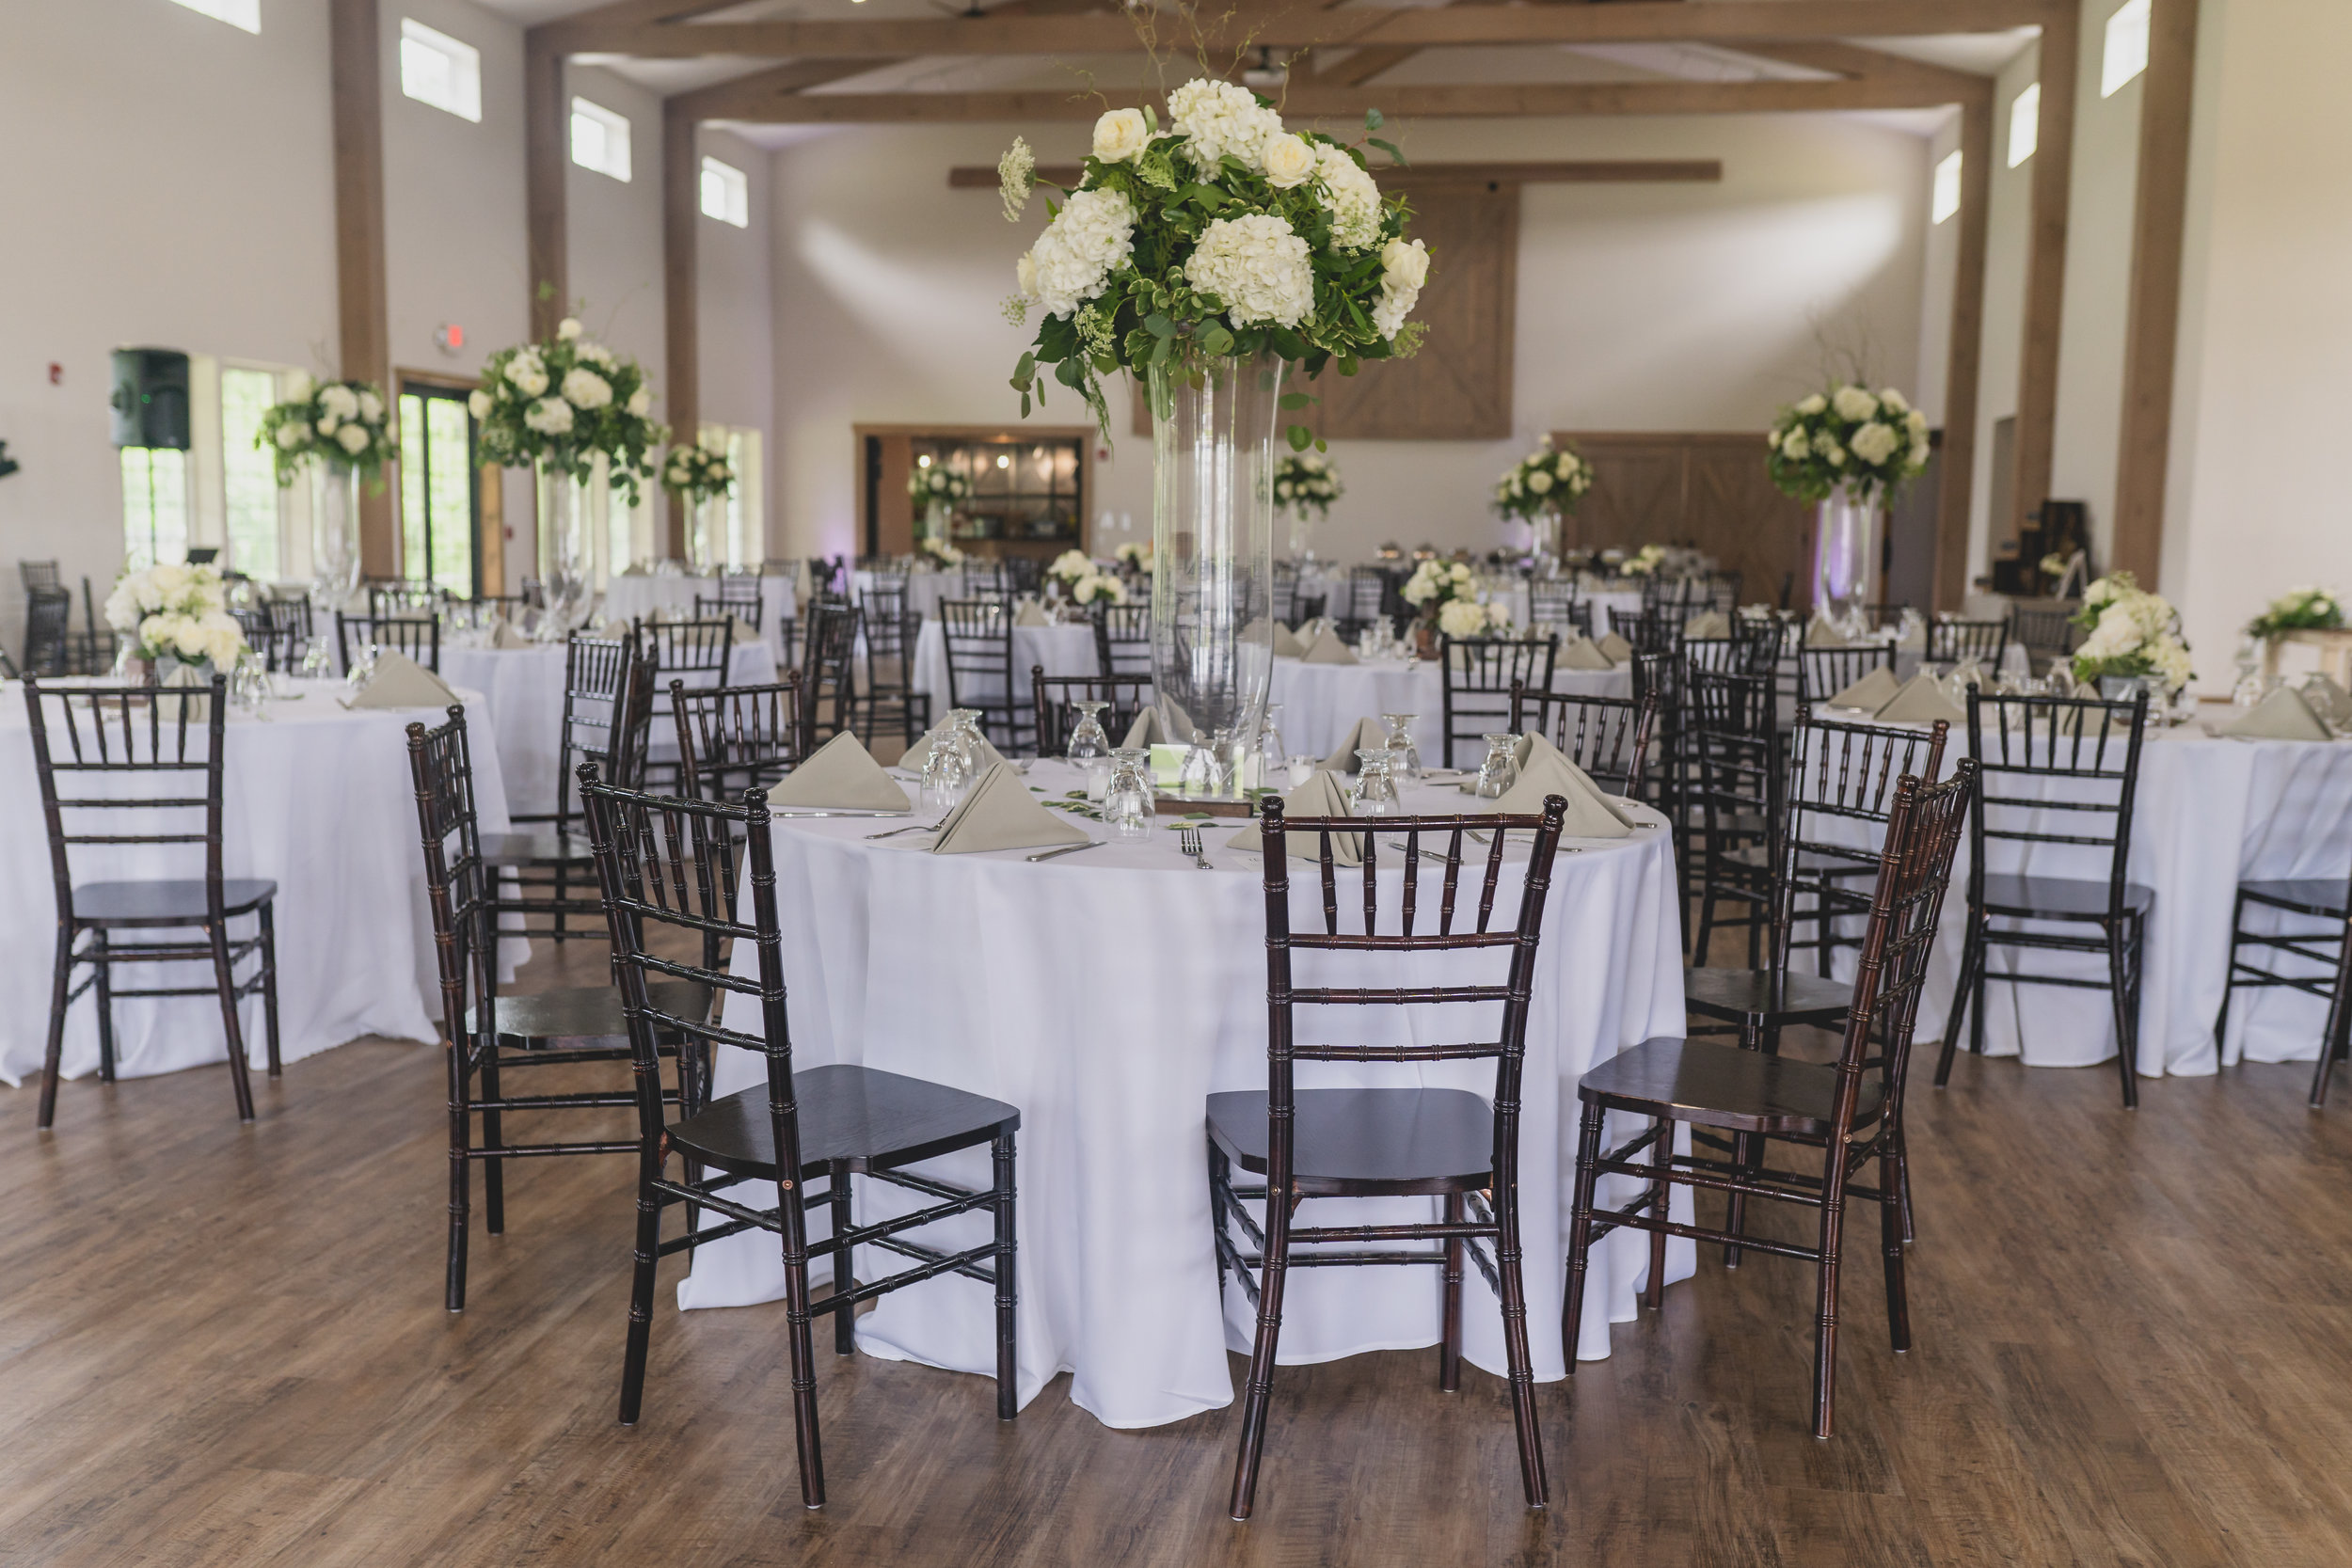 Rustic themed wedding - Reception hall featuring large white floral centerpieces and neutral color tones.